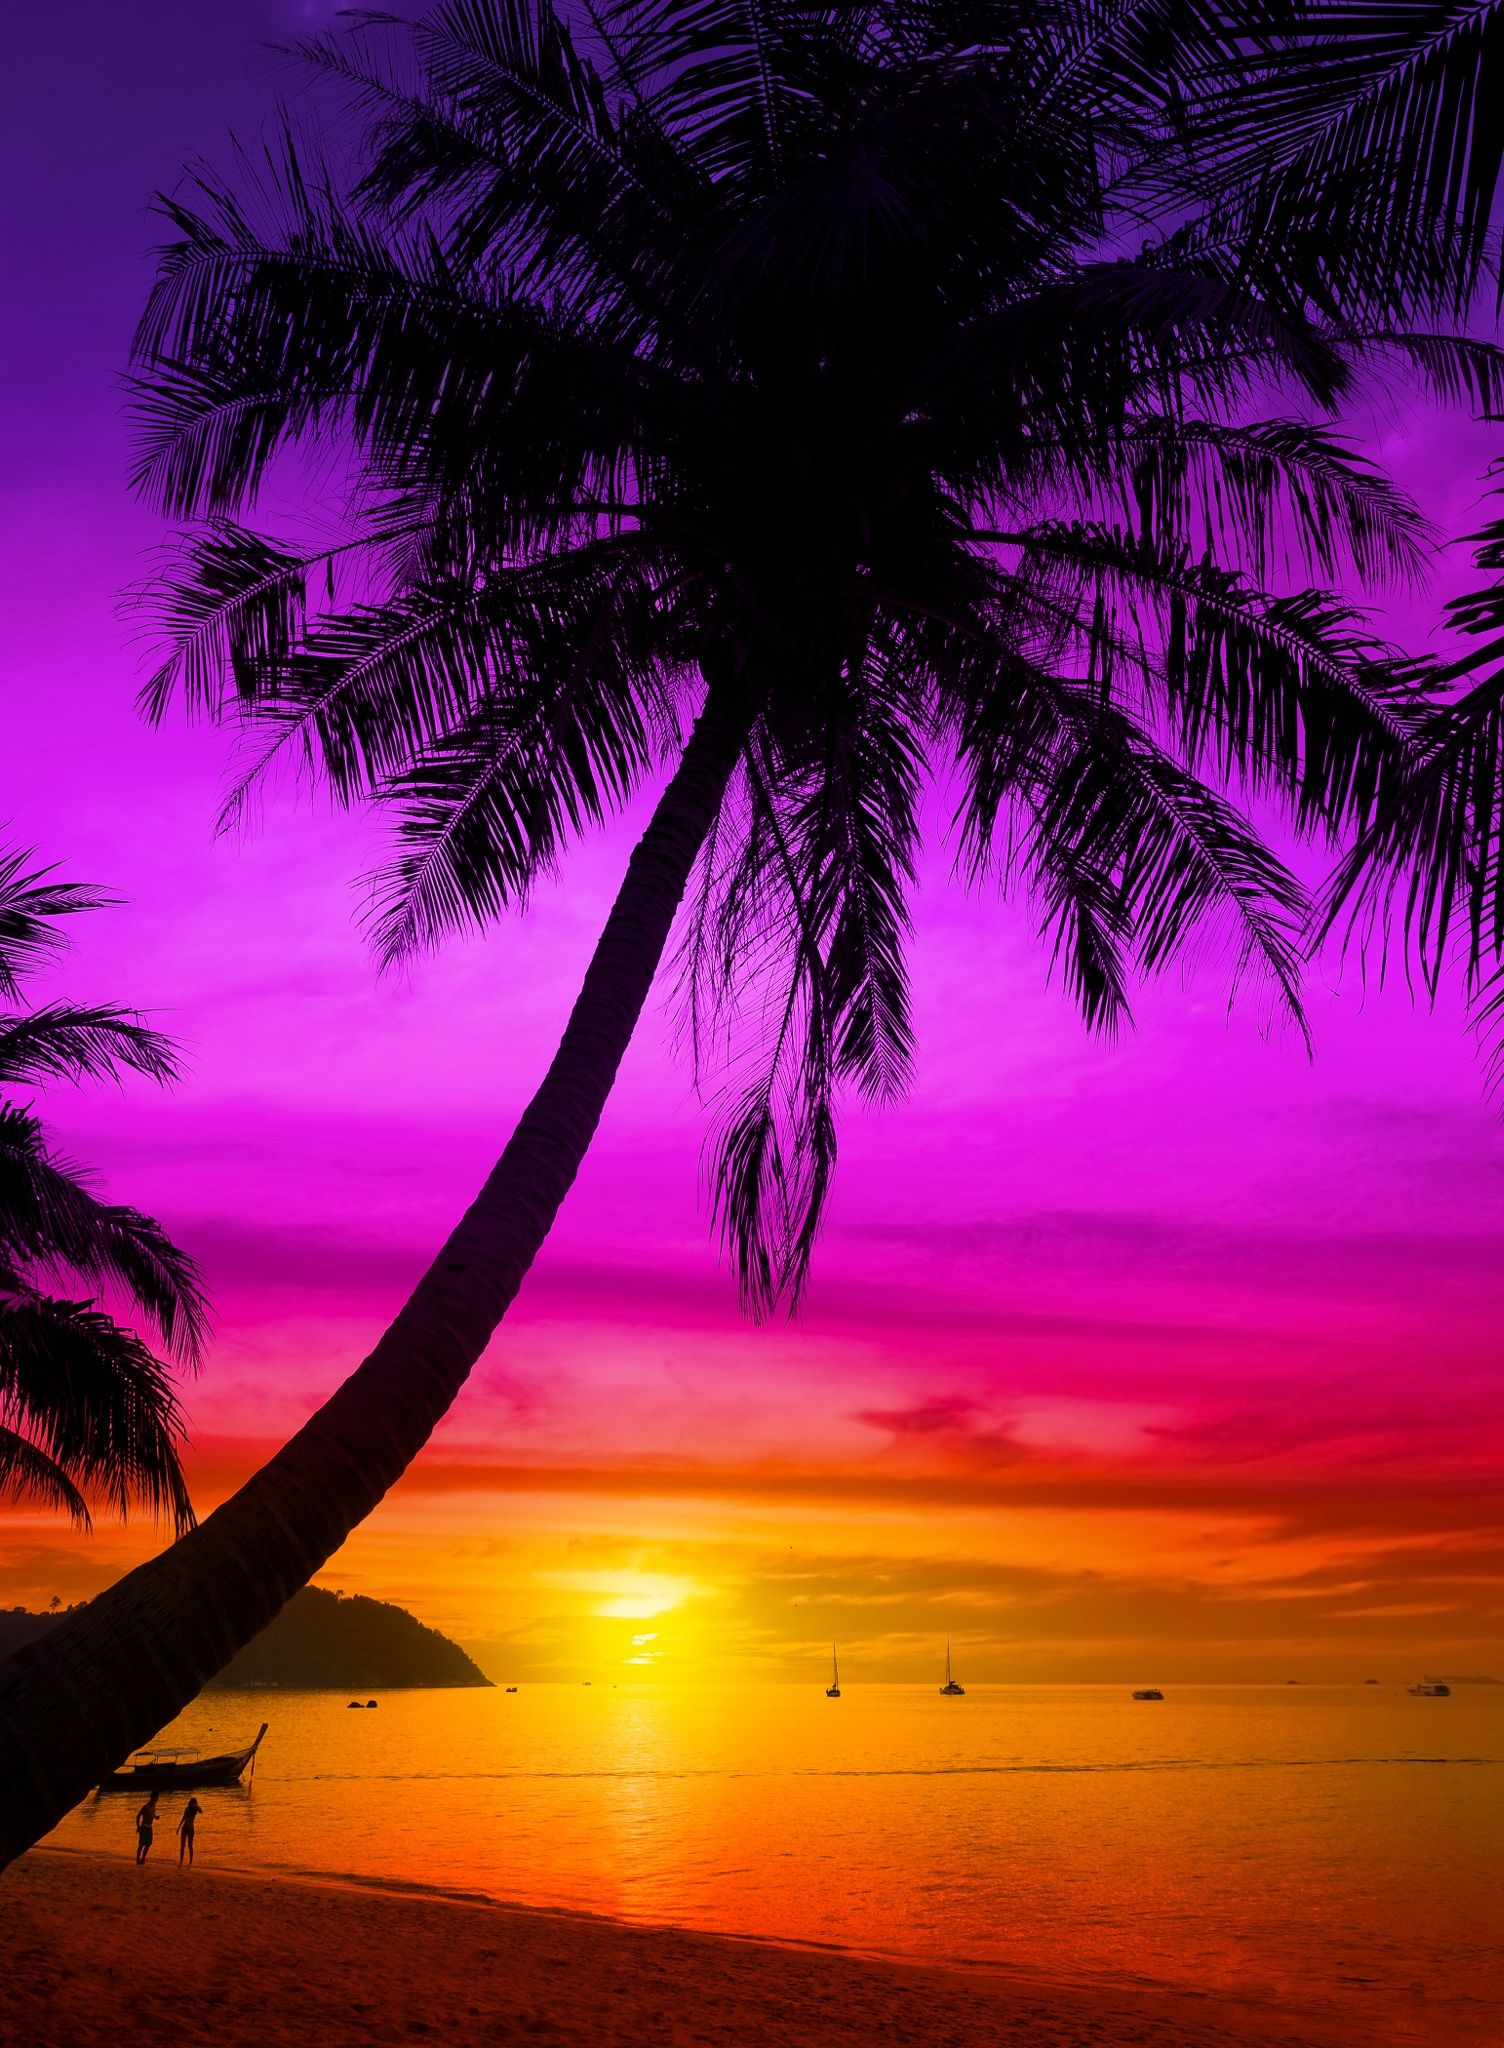 Palm Tree Silhouette On Tropical Beach At Sunset Lindas